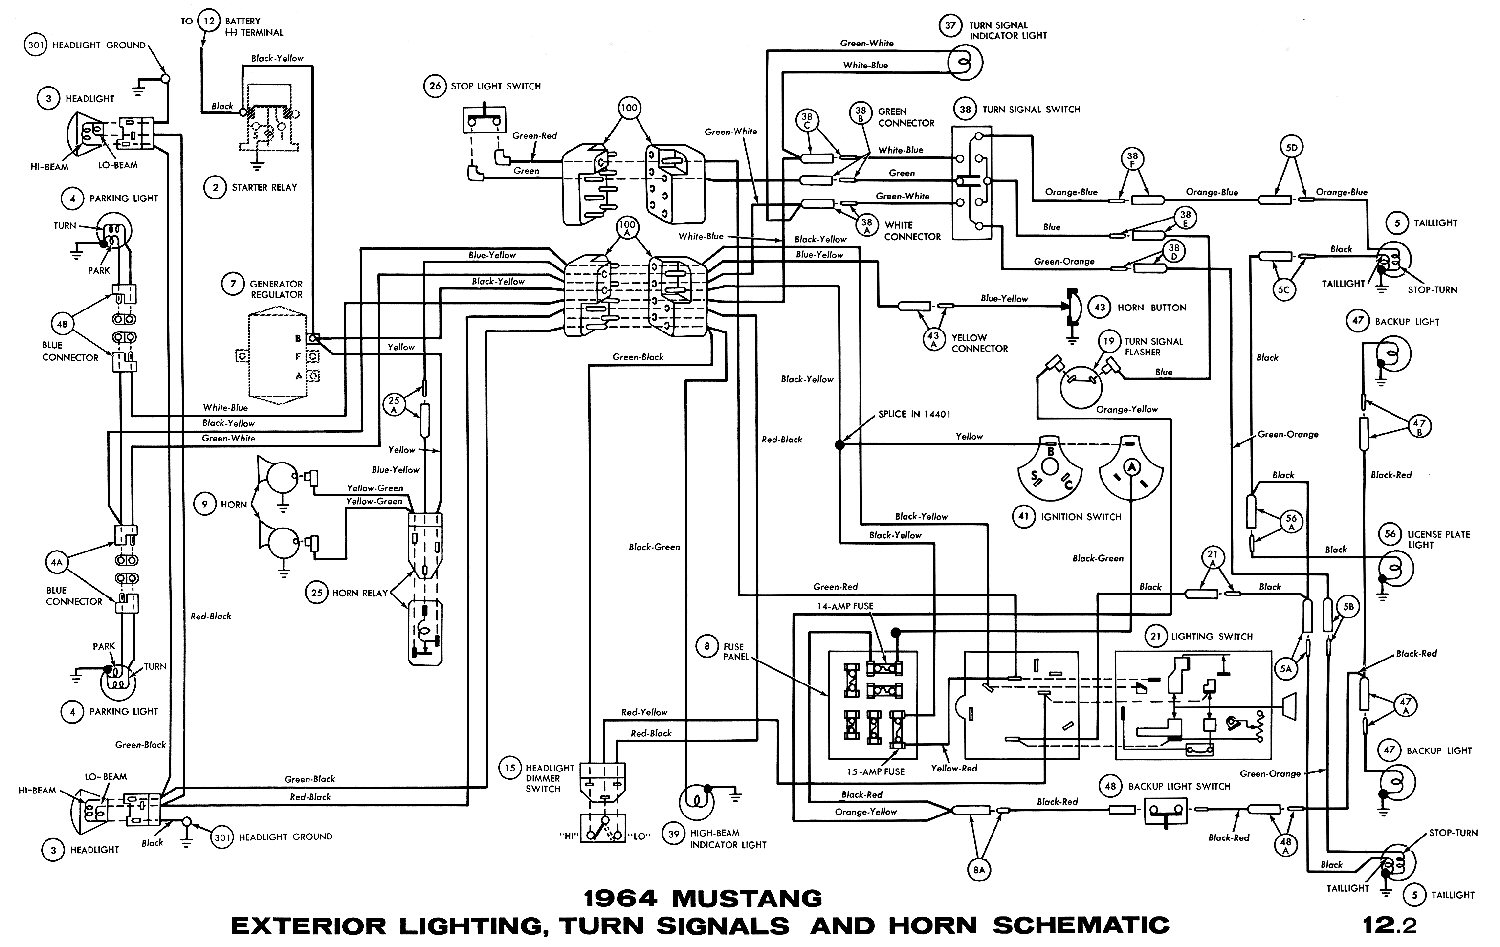 1964i 66 mustang wiring diagram online 65 ford mustang wiring diagram 1969 mustang wiring diagram online at gsmx.co